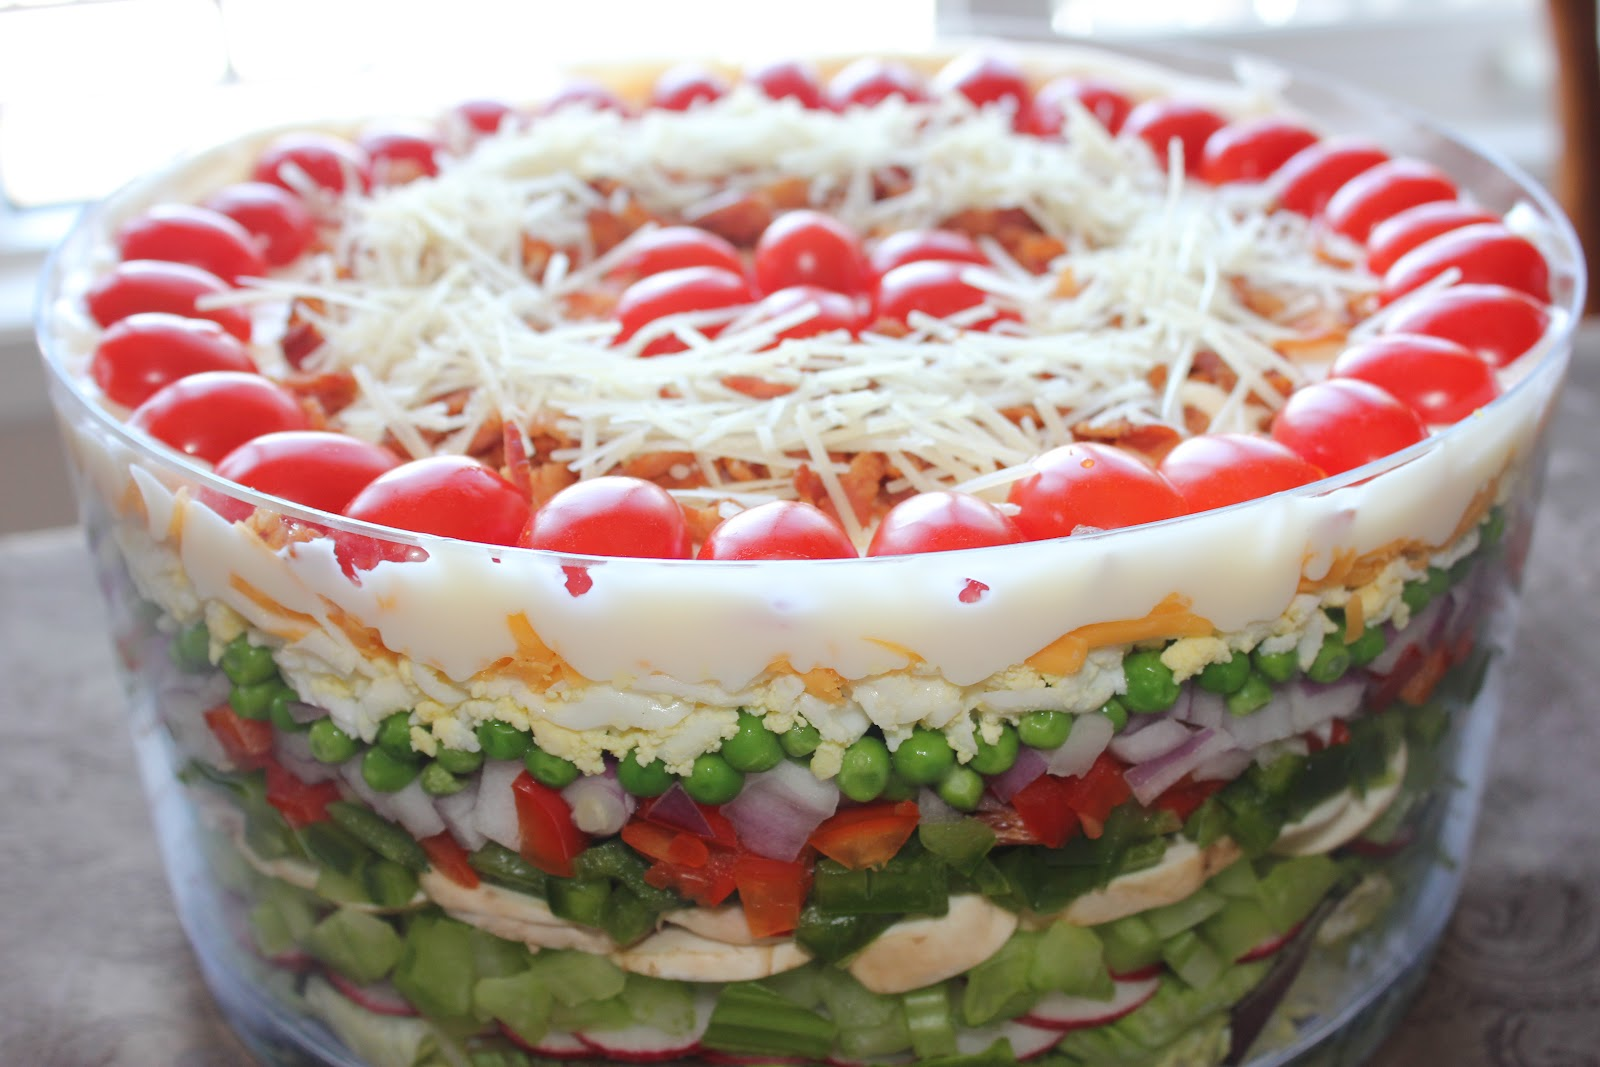 Sisters Luv 2 Cook: Betty's Layered Salad